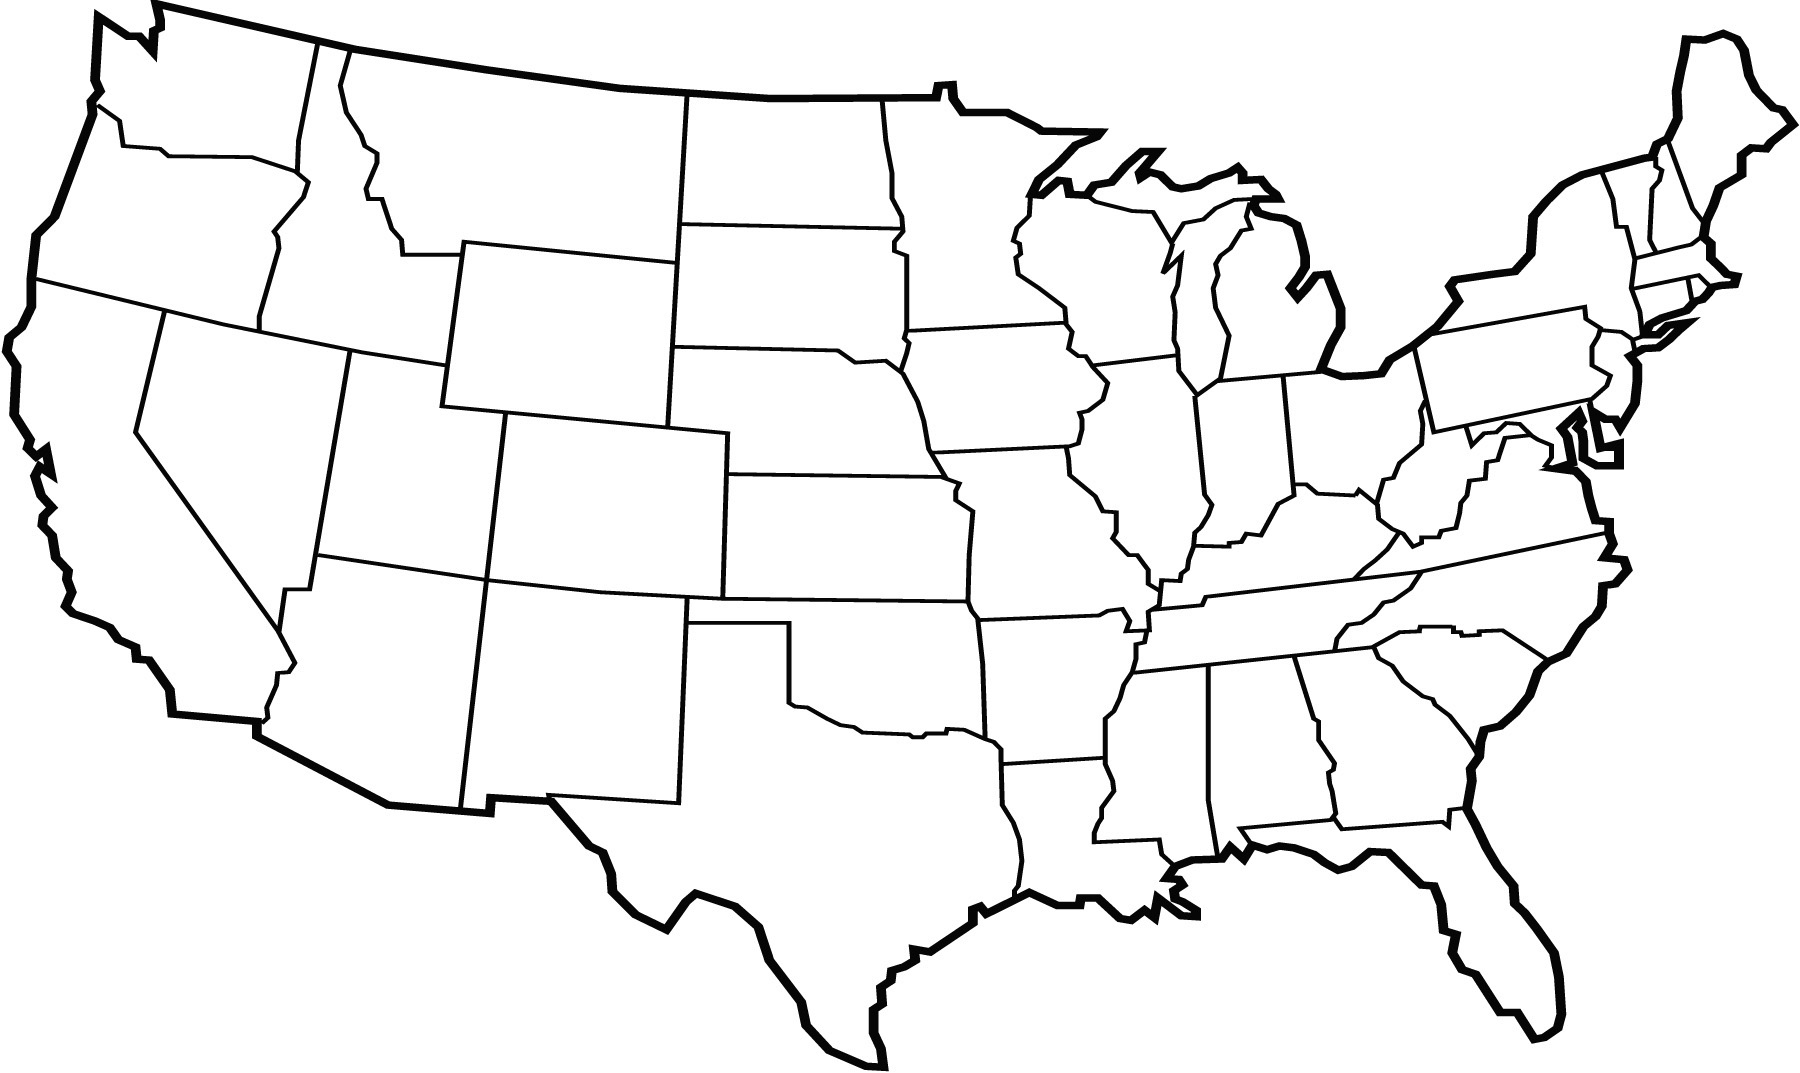 Blank USA Map Vector Images Blank USA Map Vector United - Blank us map vector